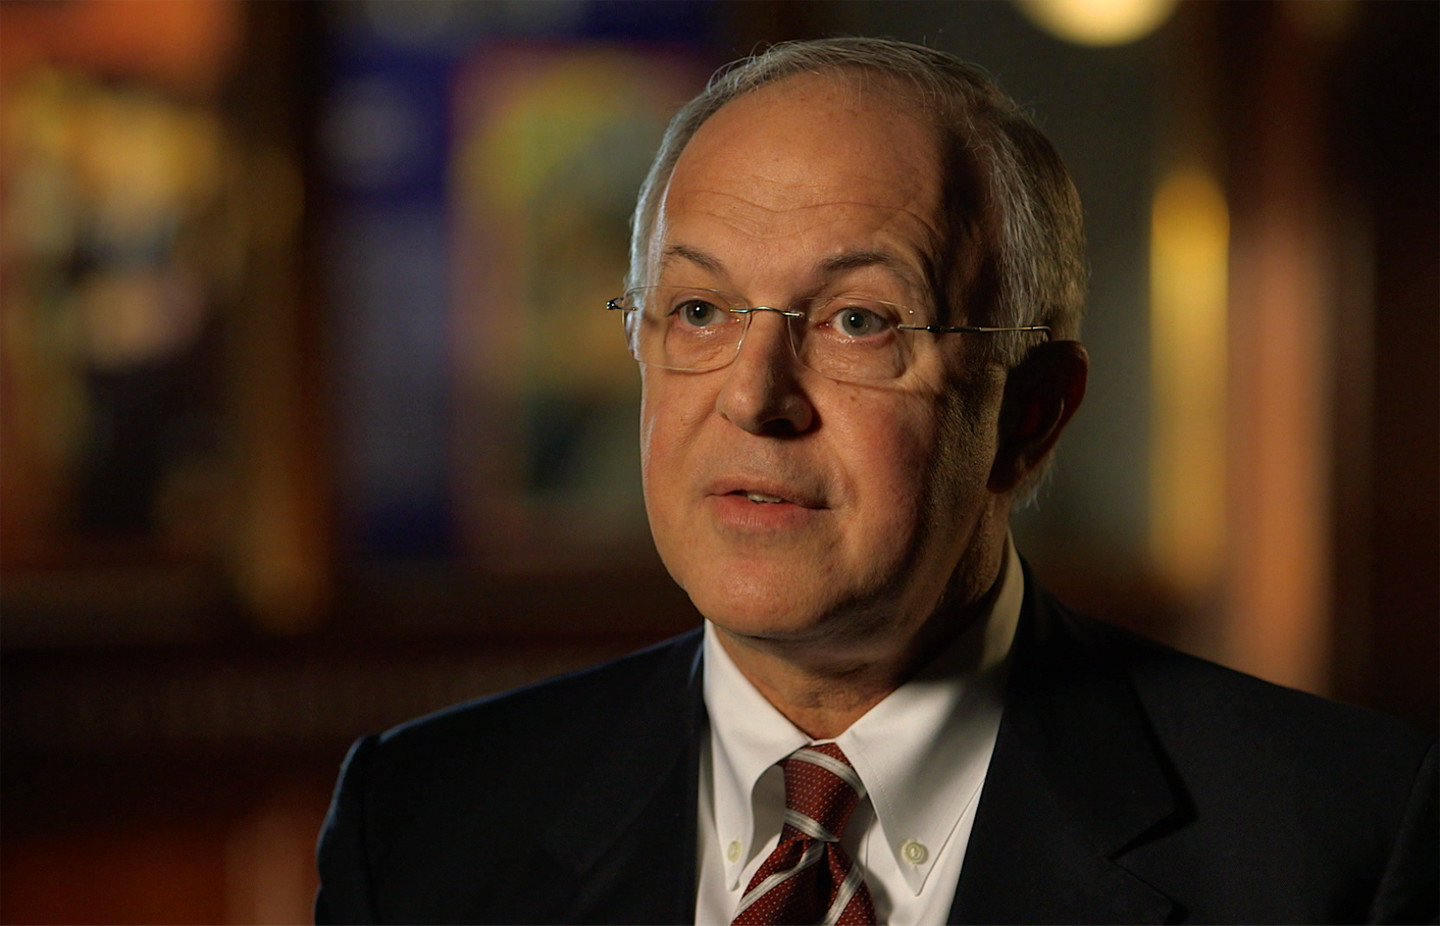 Supreme Knight, Carl Anderson, interviewee on John Paul II: Liberating a Continent, the Fall of Communism.